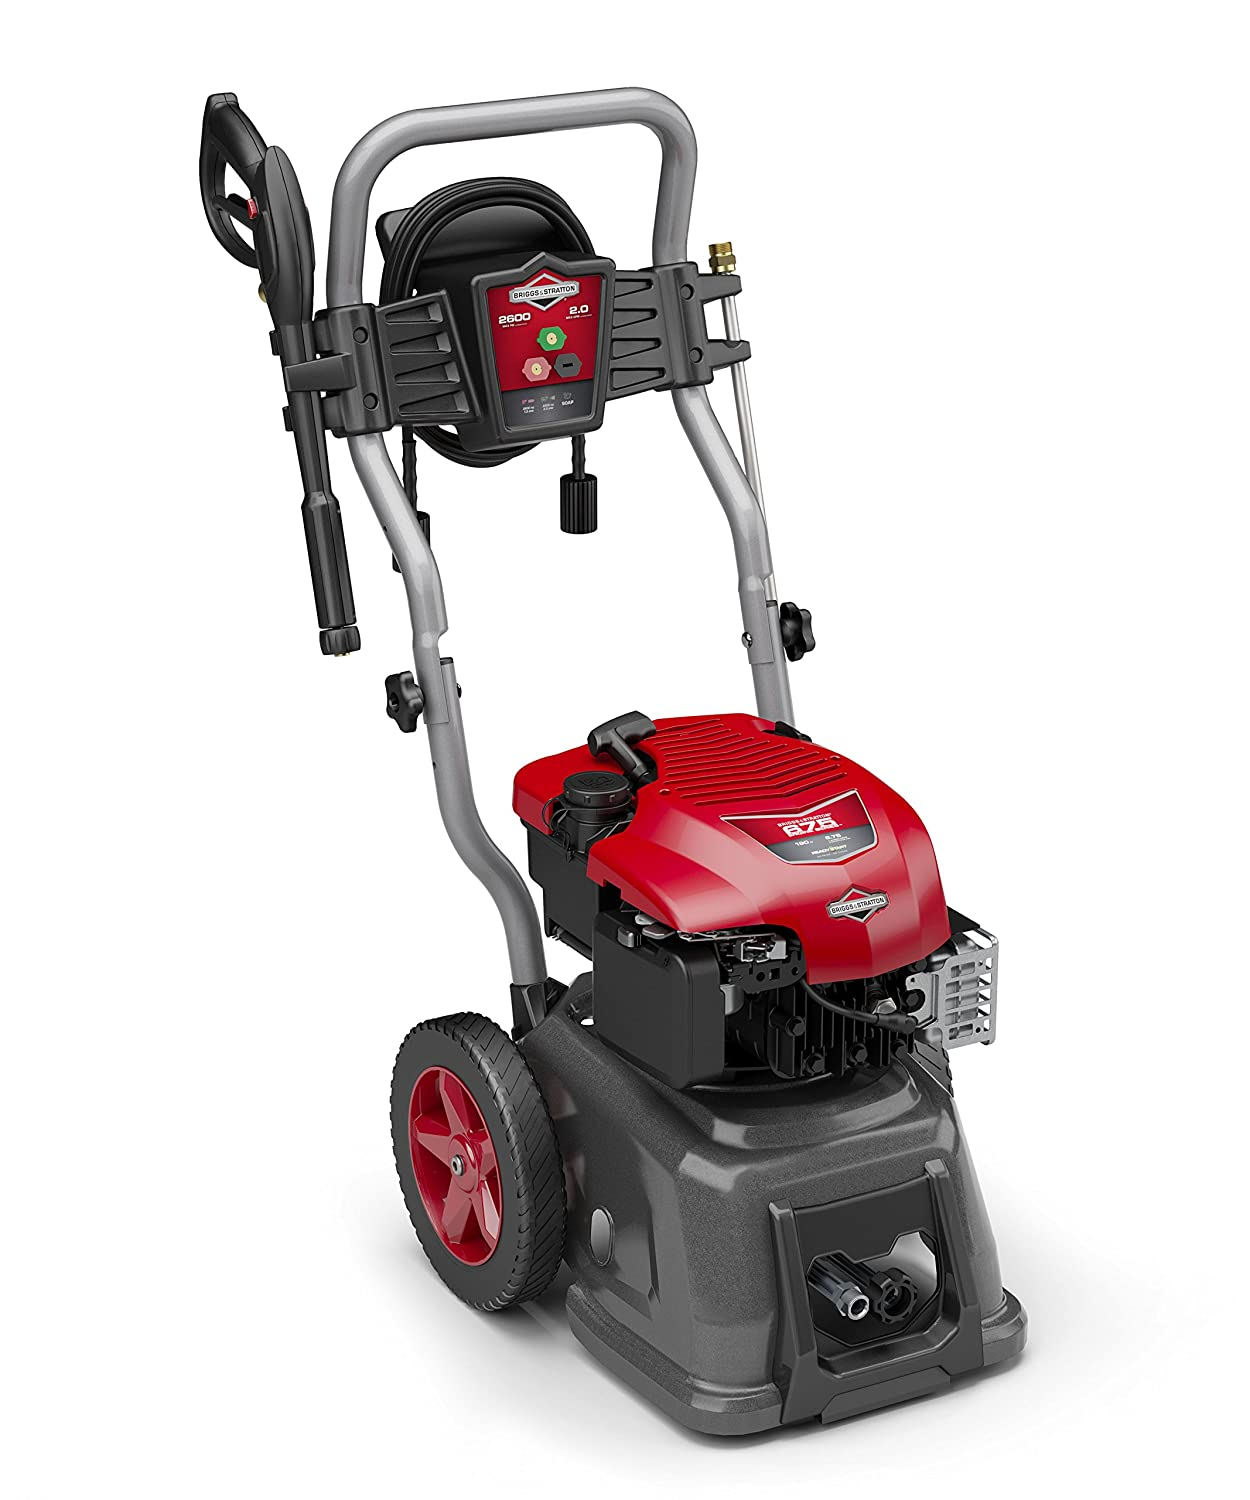 Amazon.com : Briggs & Stratton 20594 2.3-GPM 2600-PSI Gas Pressure Washer  with Full Steel Frame, 675-Series 190cc Engine and ReadyStart Technology,  ...